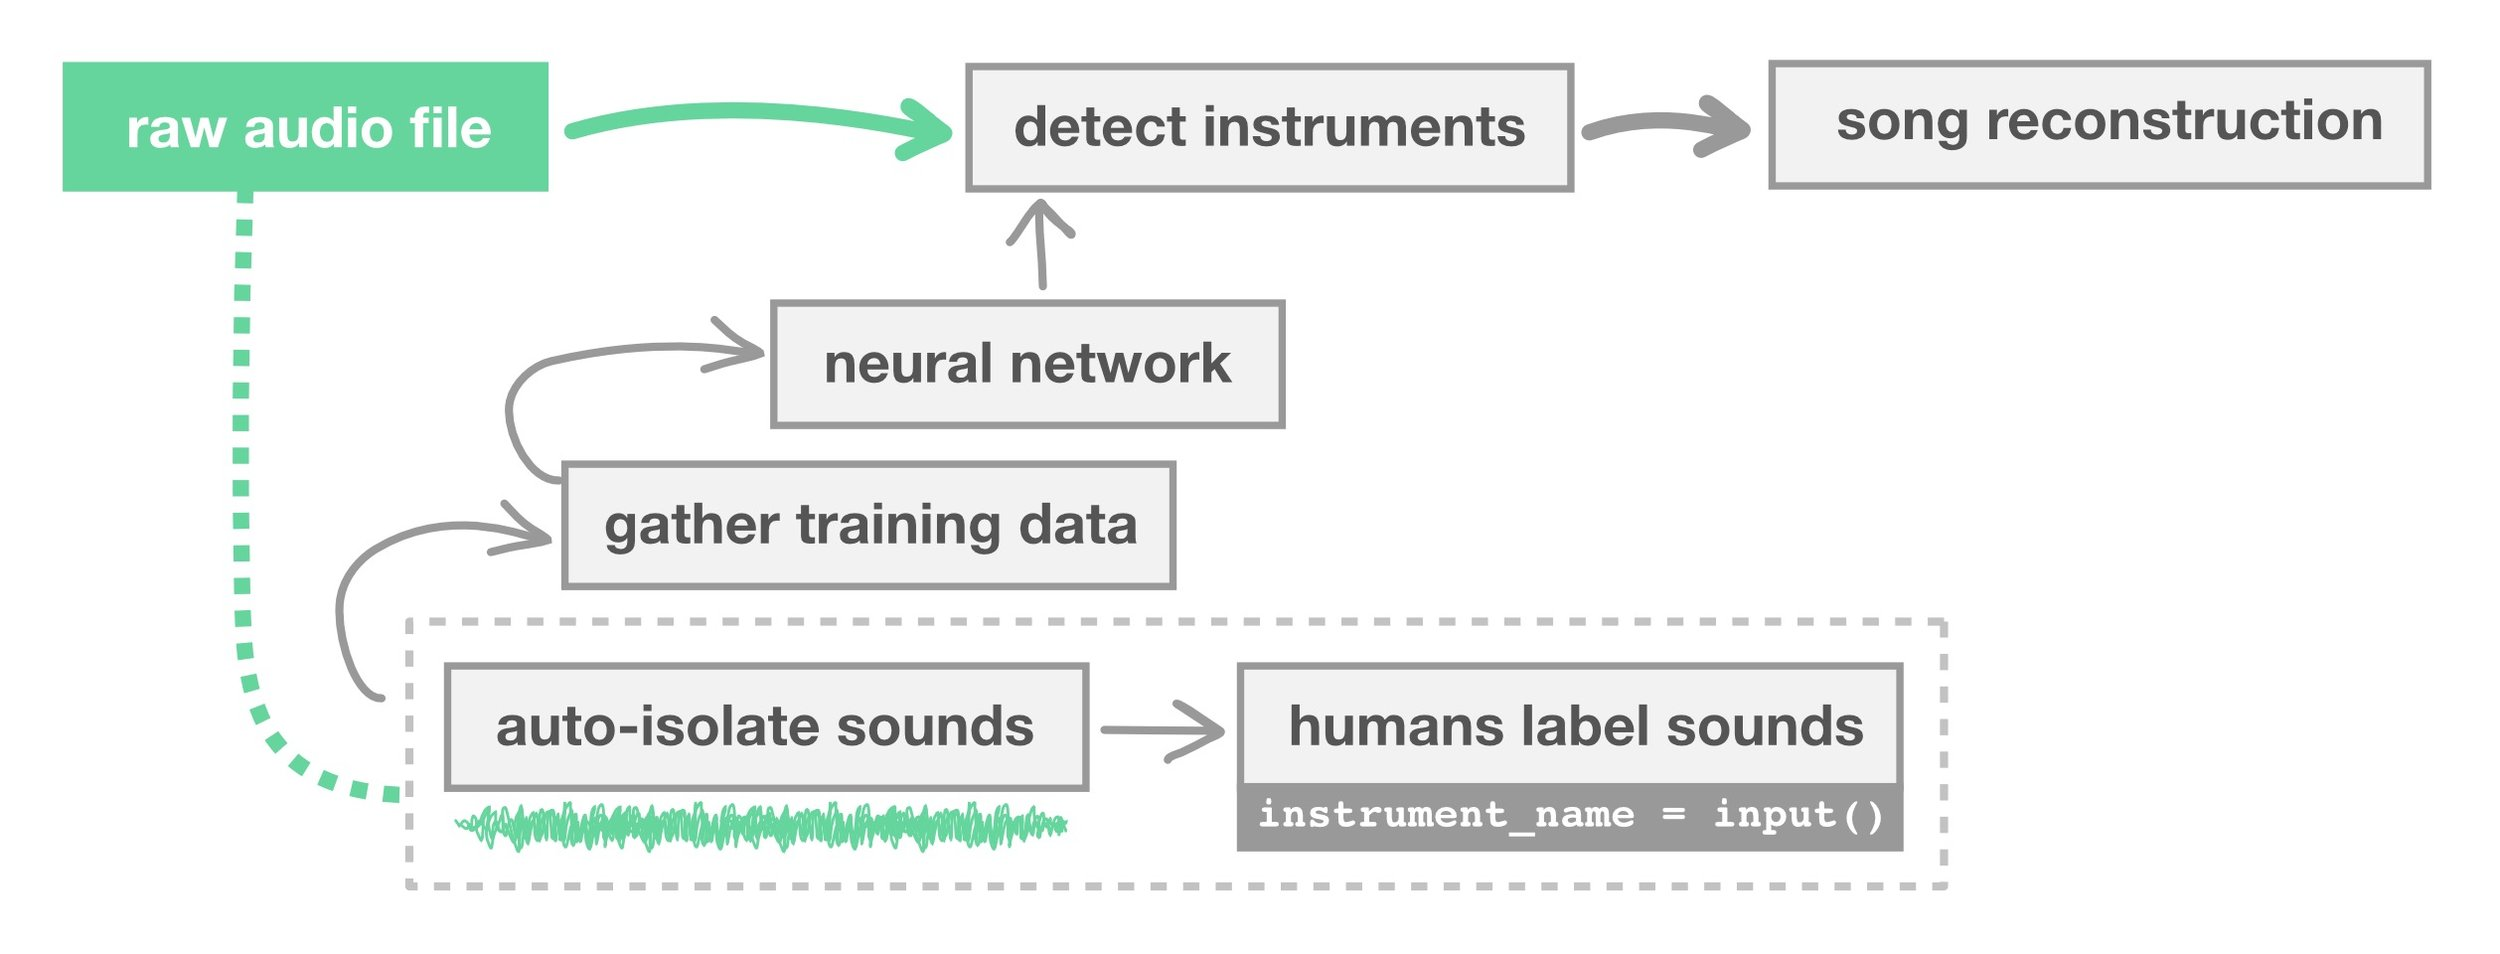 instrument_name = input() asks the user for an instrument label, so the network can learn the names of the different sounds.